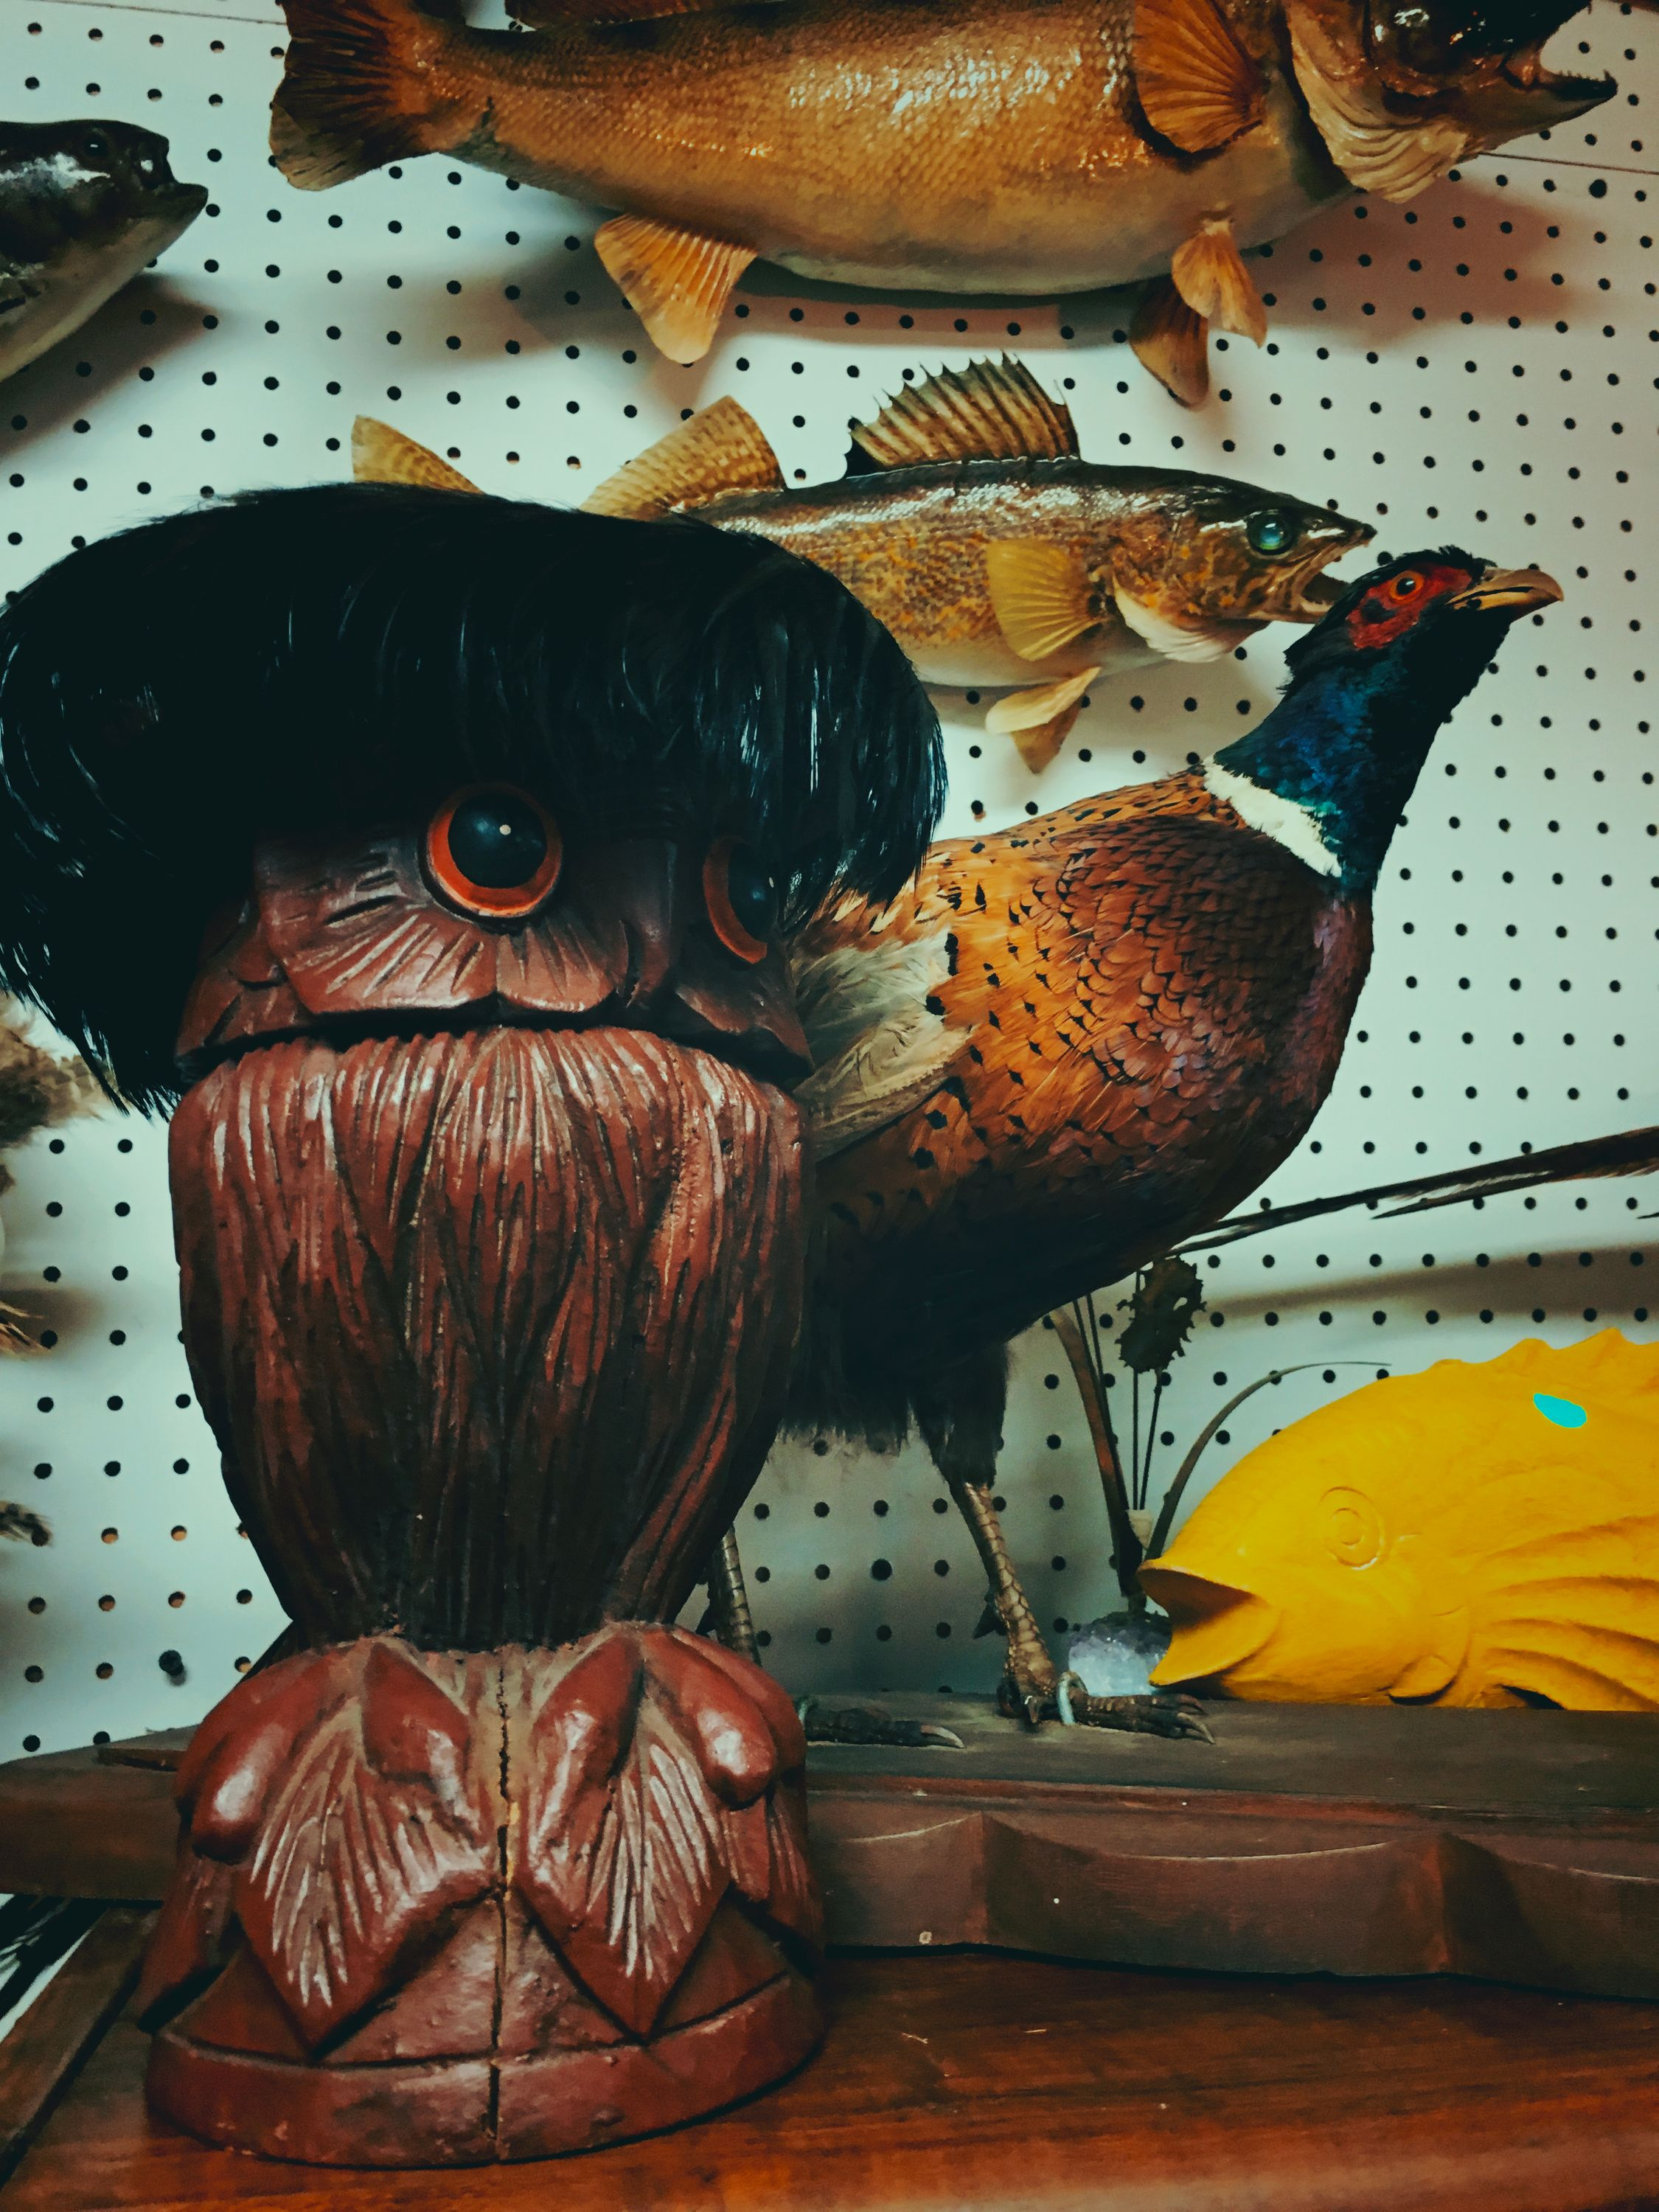 An owl a pheasant and a fish